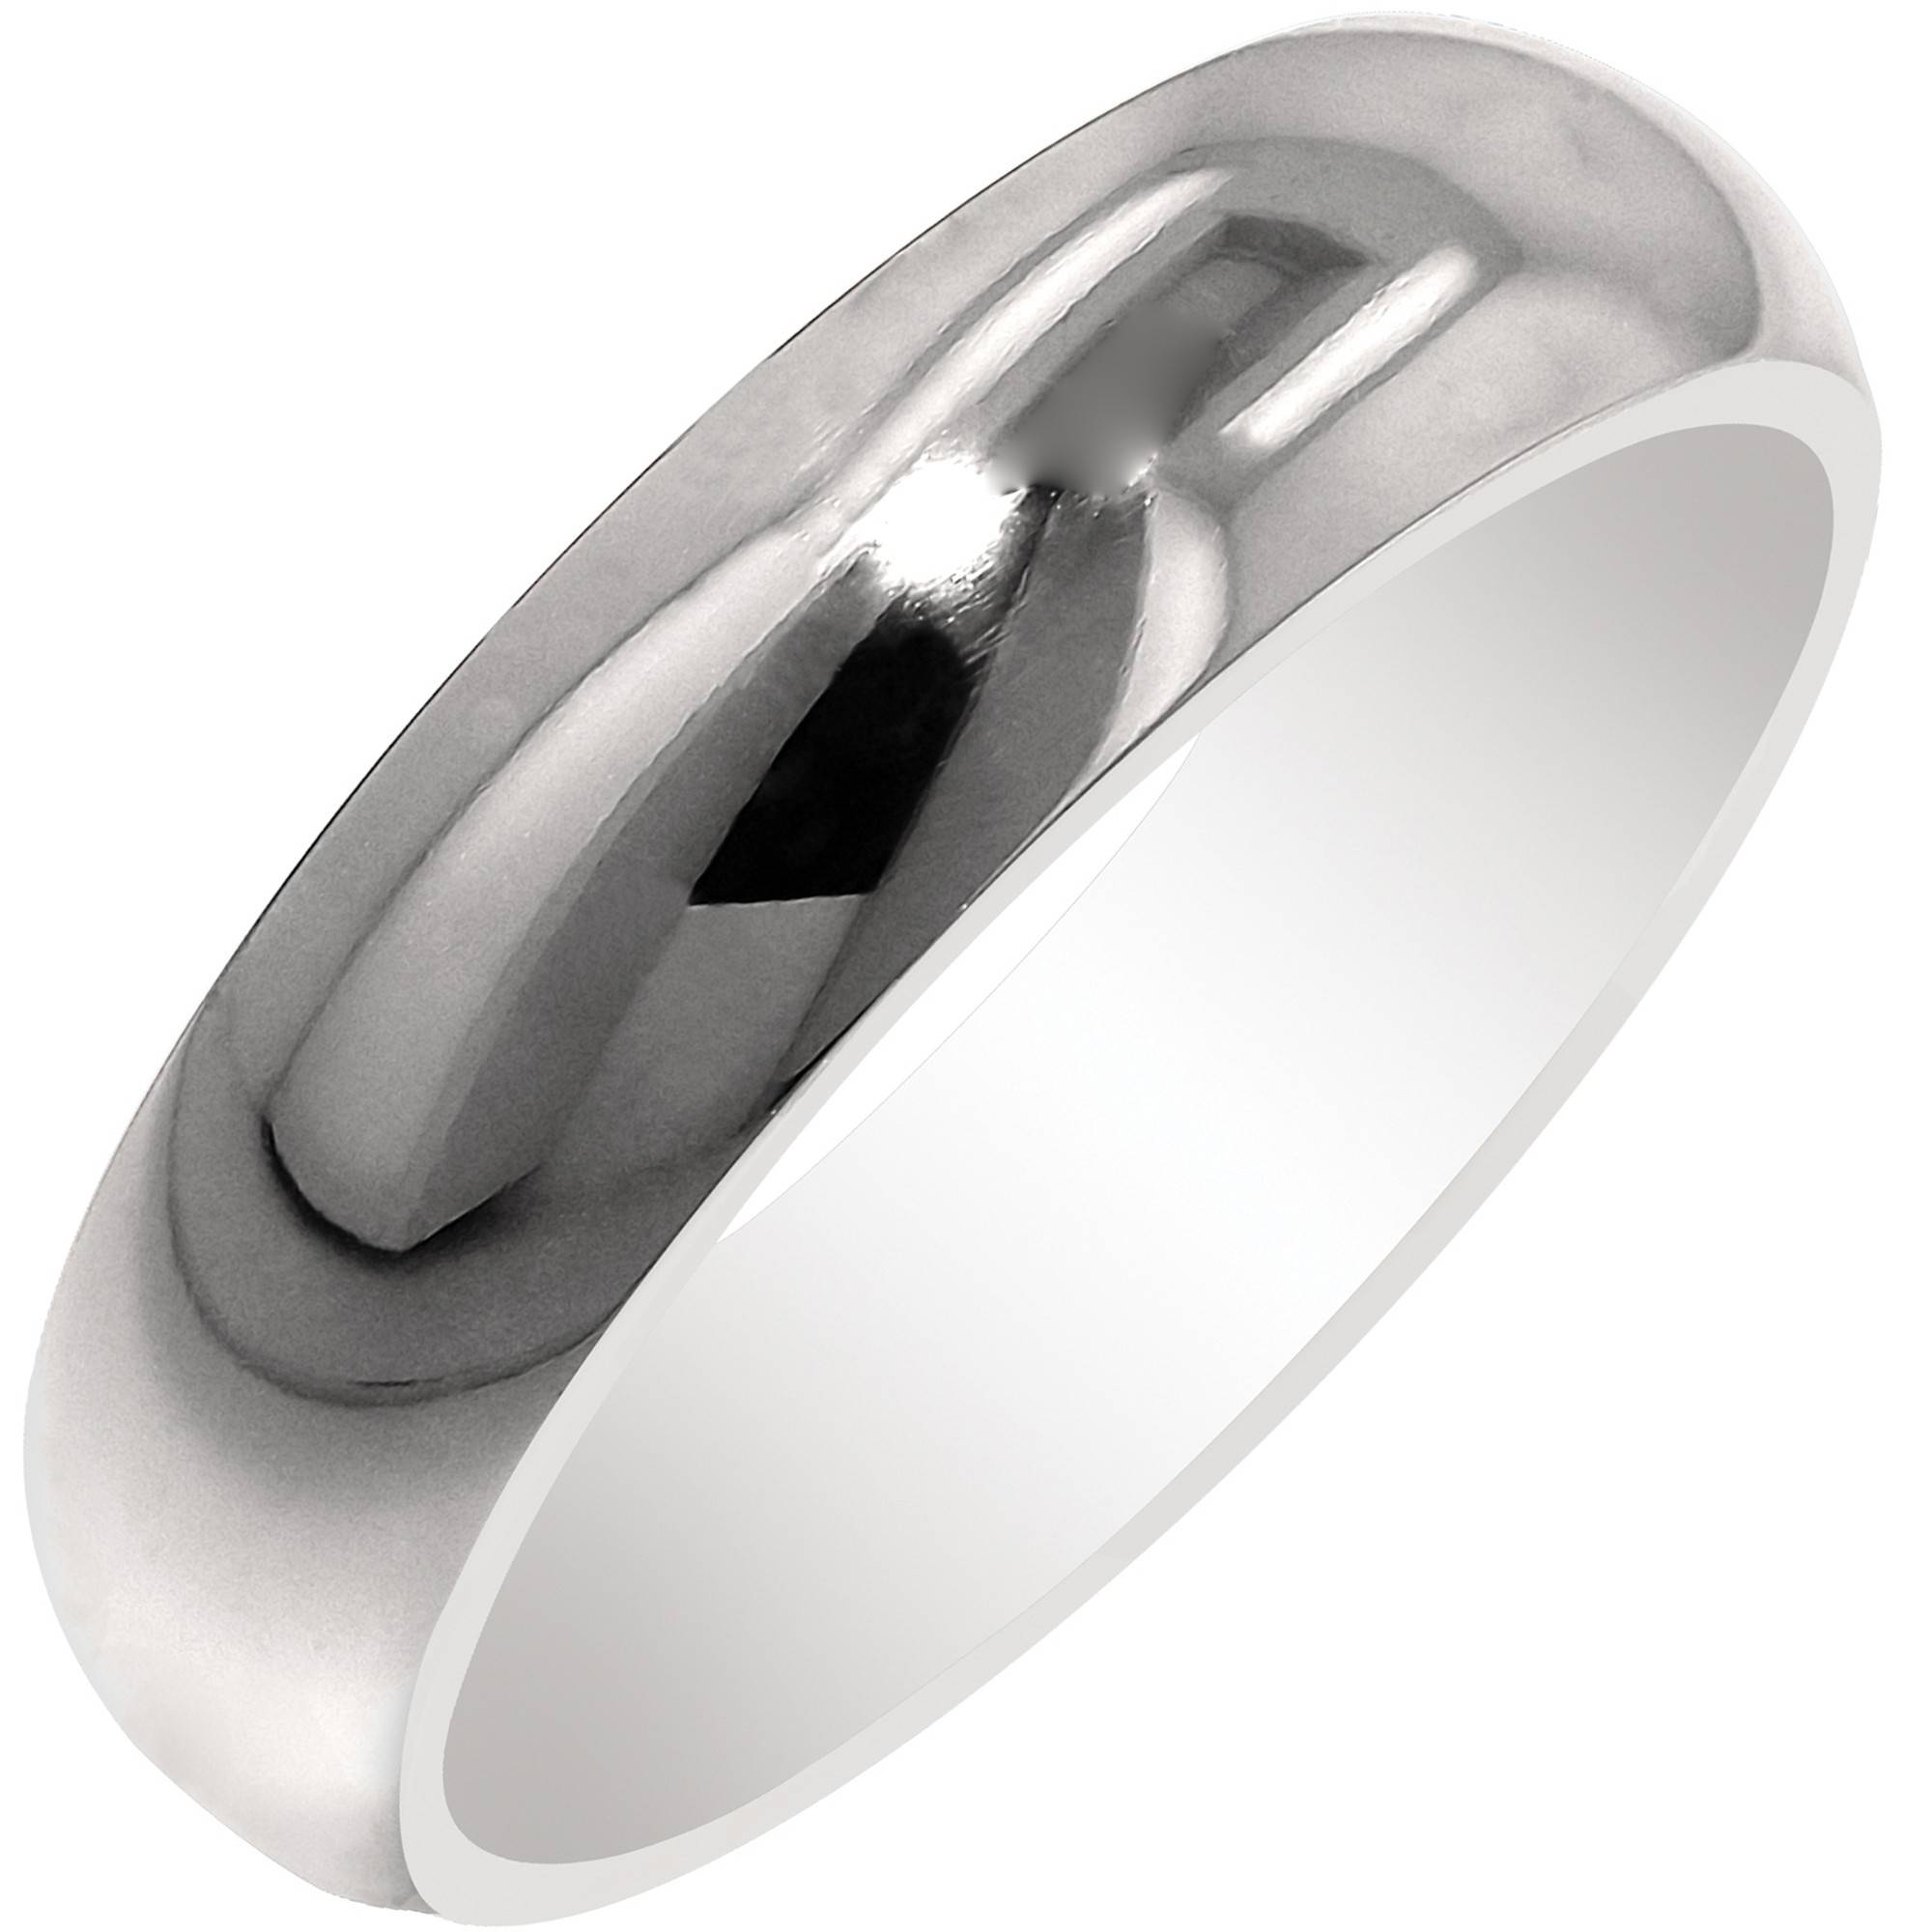 Artcarved Honor Mens Plain Wedding Band In Titanium (6Mm) Intended For Artcarved Men Wedding Bands (View 4 of 15)